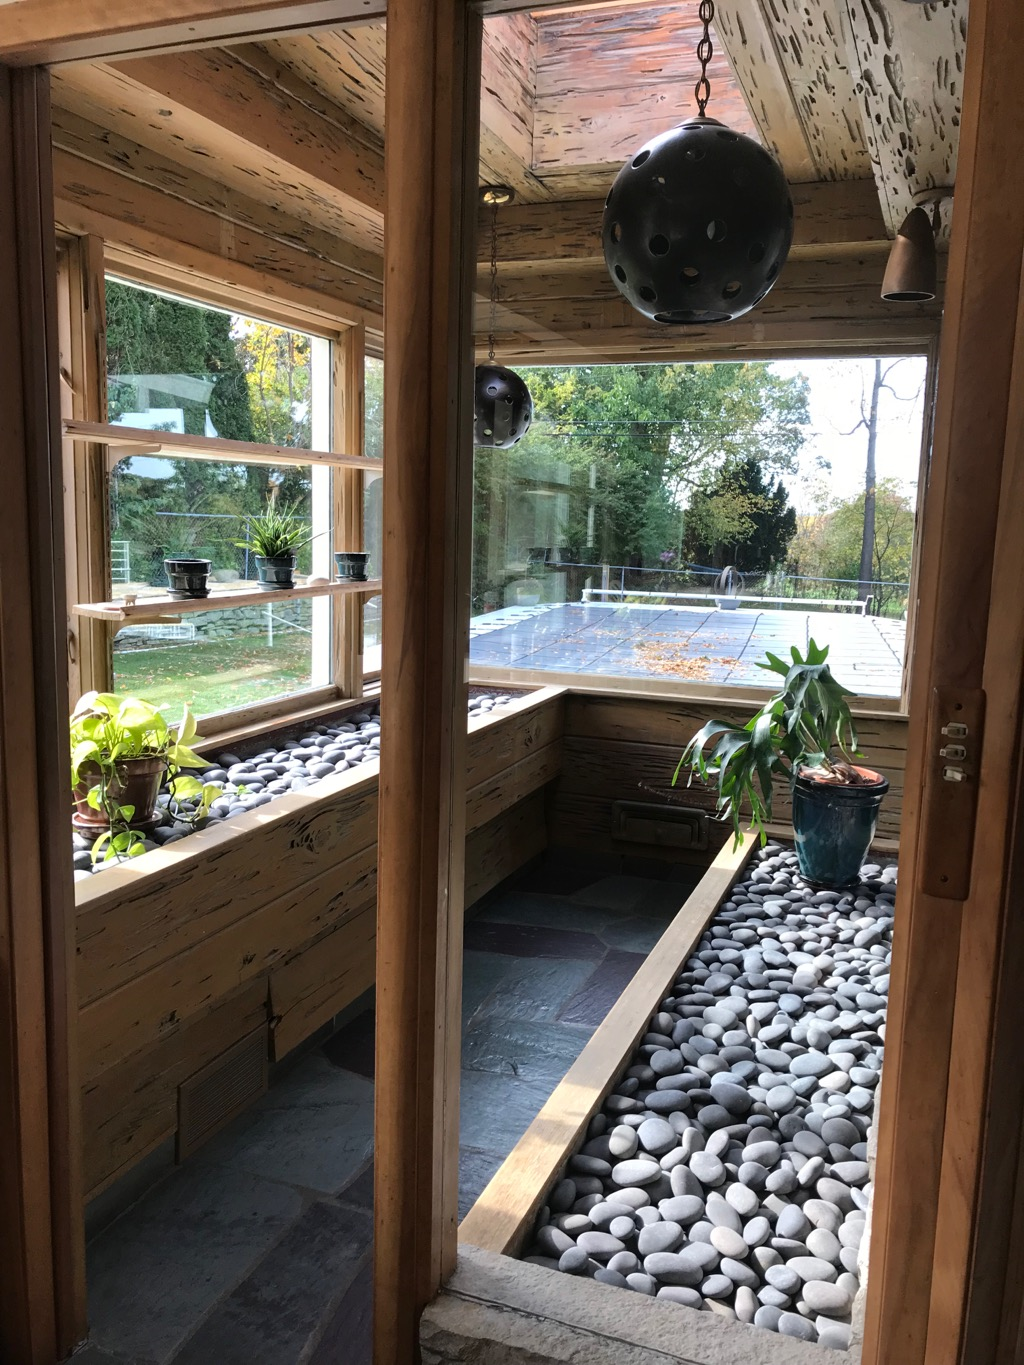 GREENHOUSE AND PLANTER